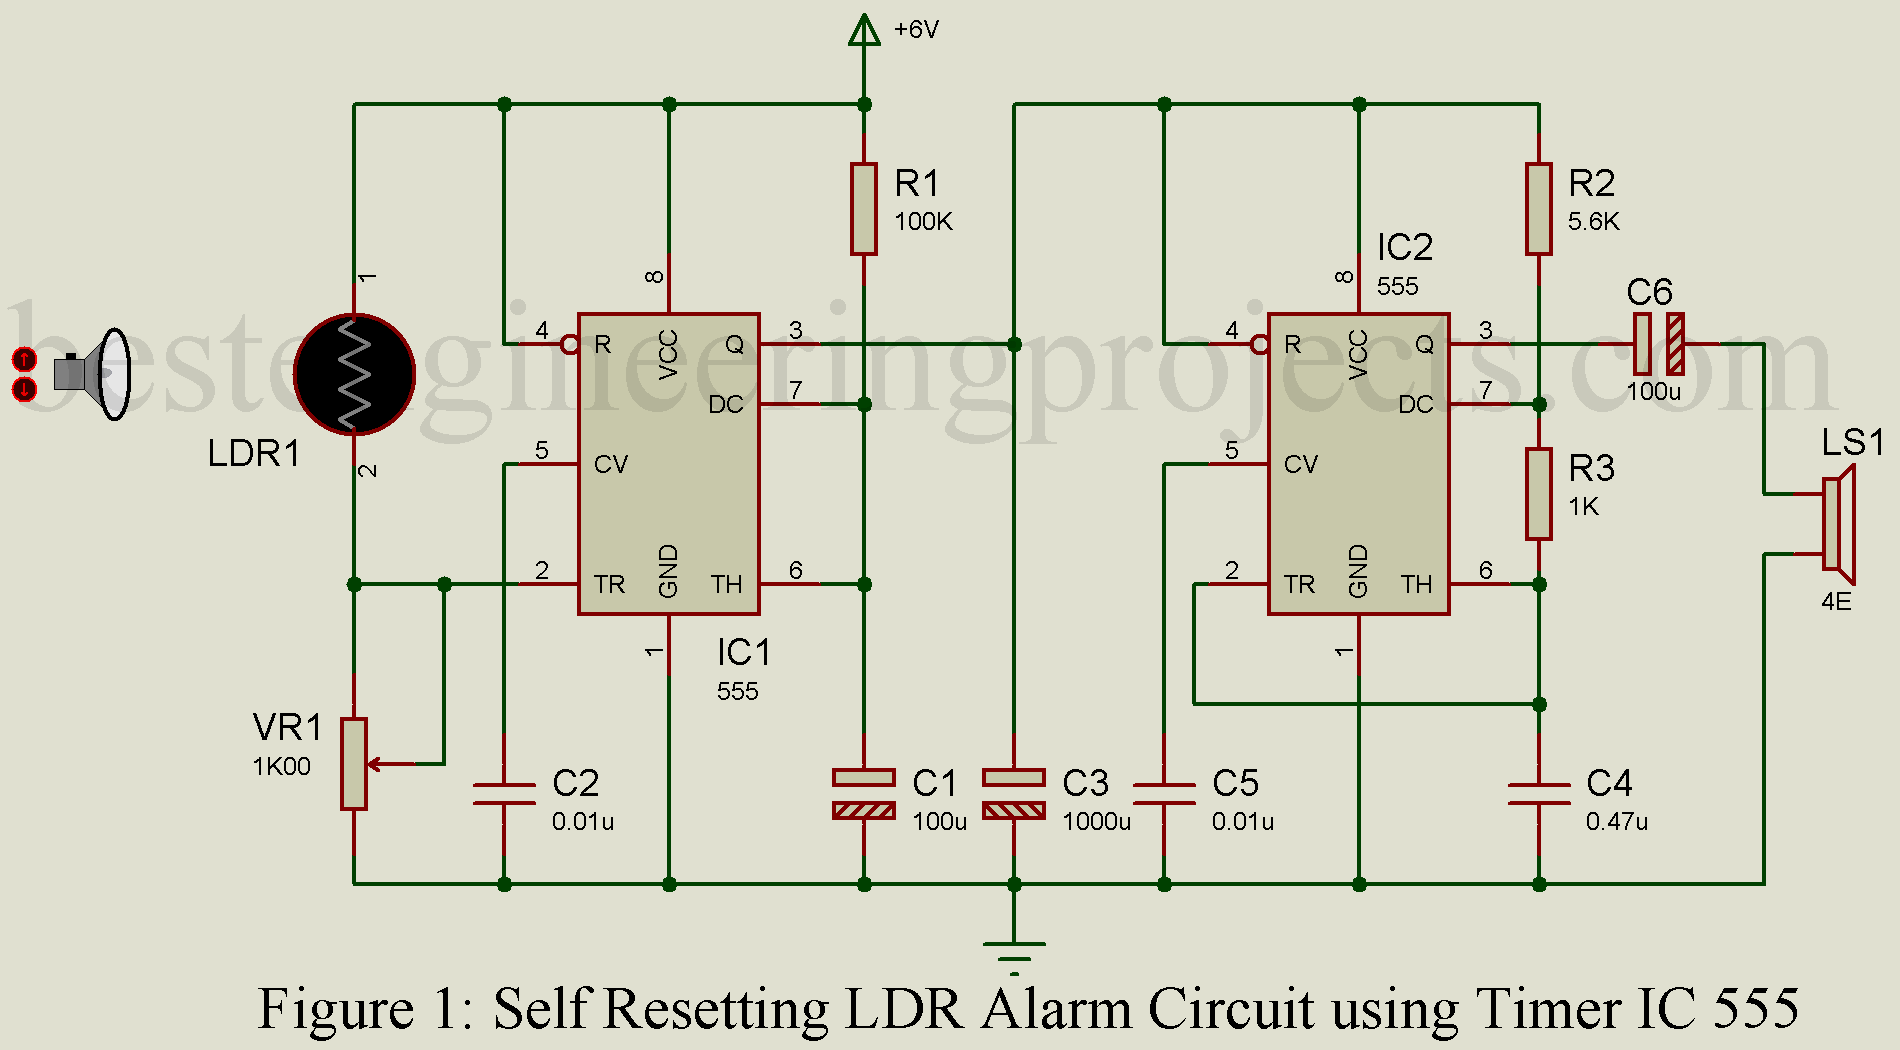 Self Resetting Ldr Alarm Using Timer Ic 555 Best Engineering Projects In The Astable Operation Mode Circuit Triggers